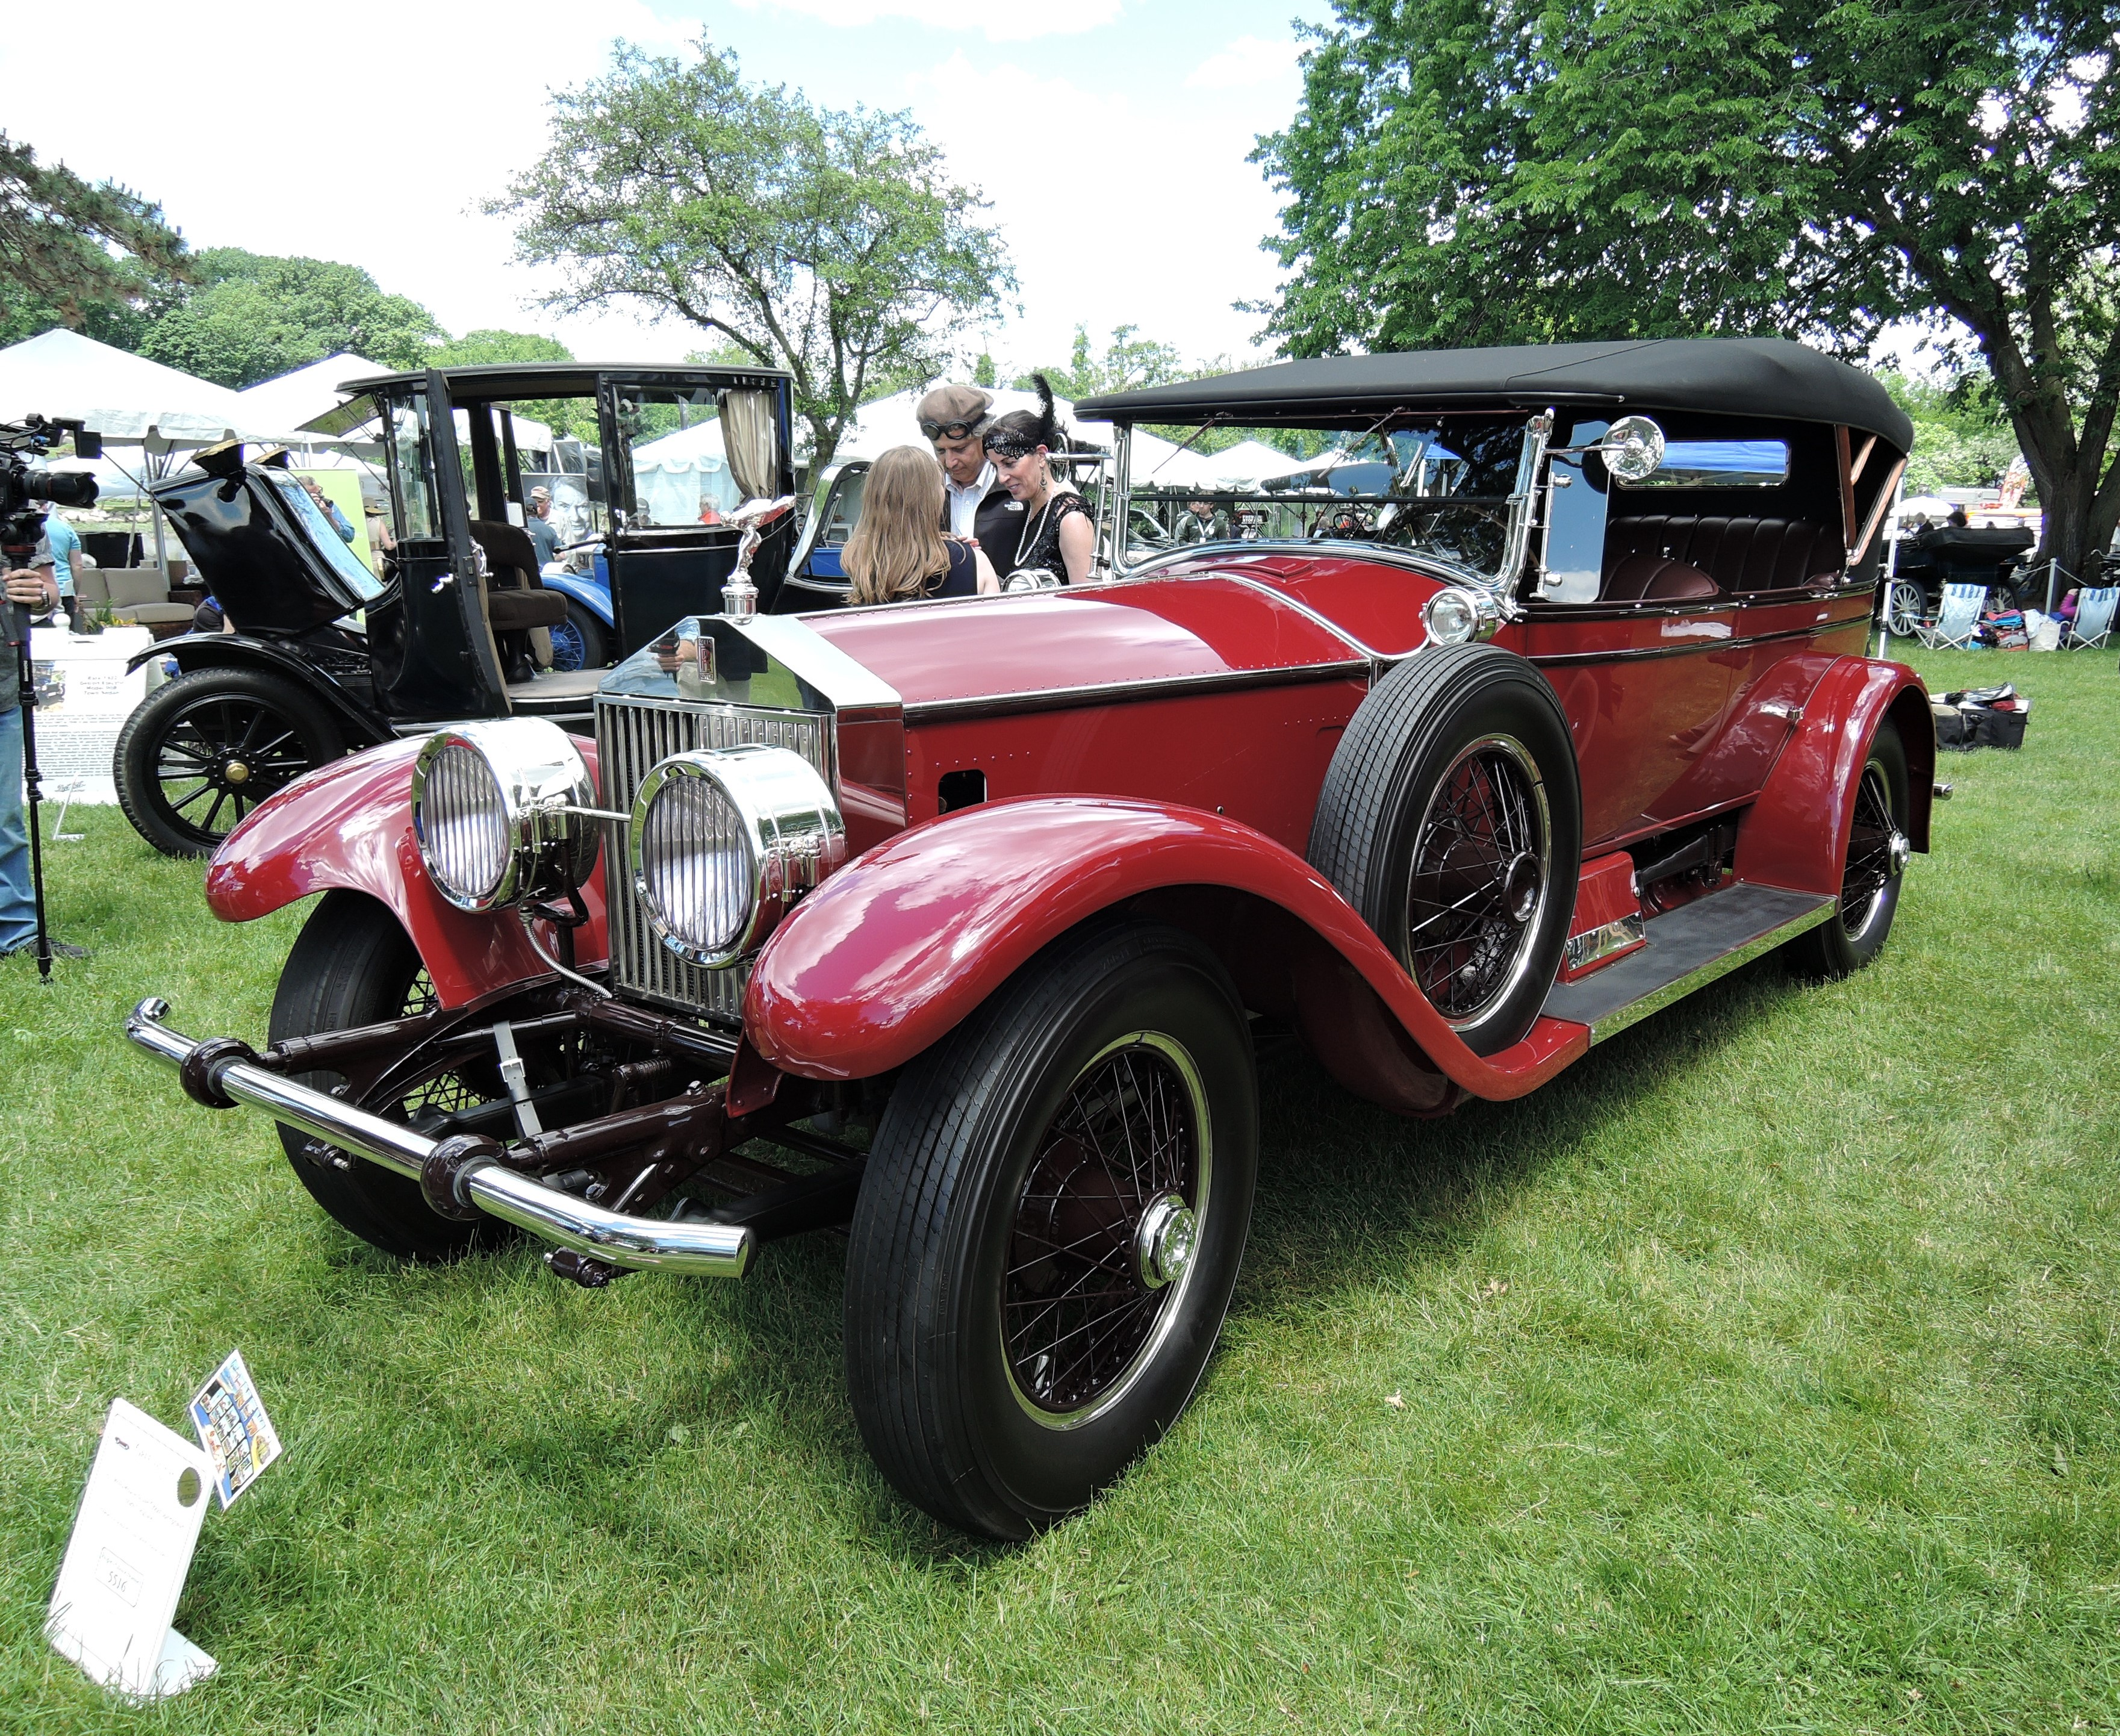 red 1921 Rolls-Royce Silver Ghost Springfield - Greenwich Concours d'Elegance 2017